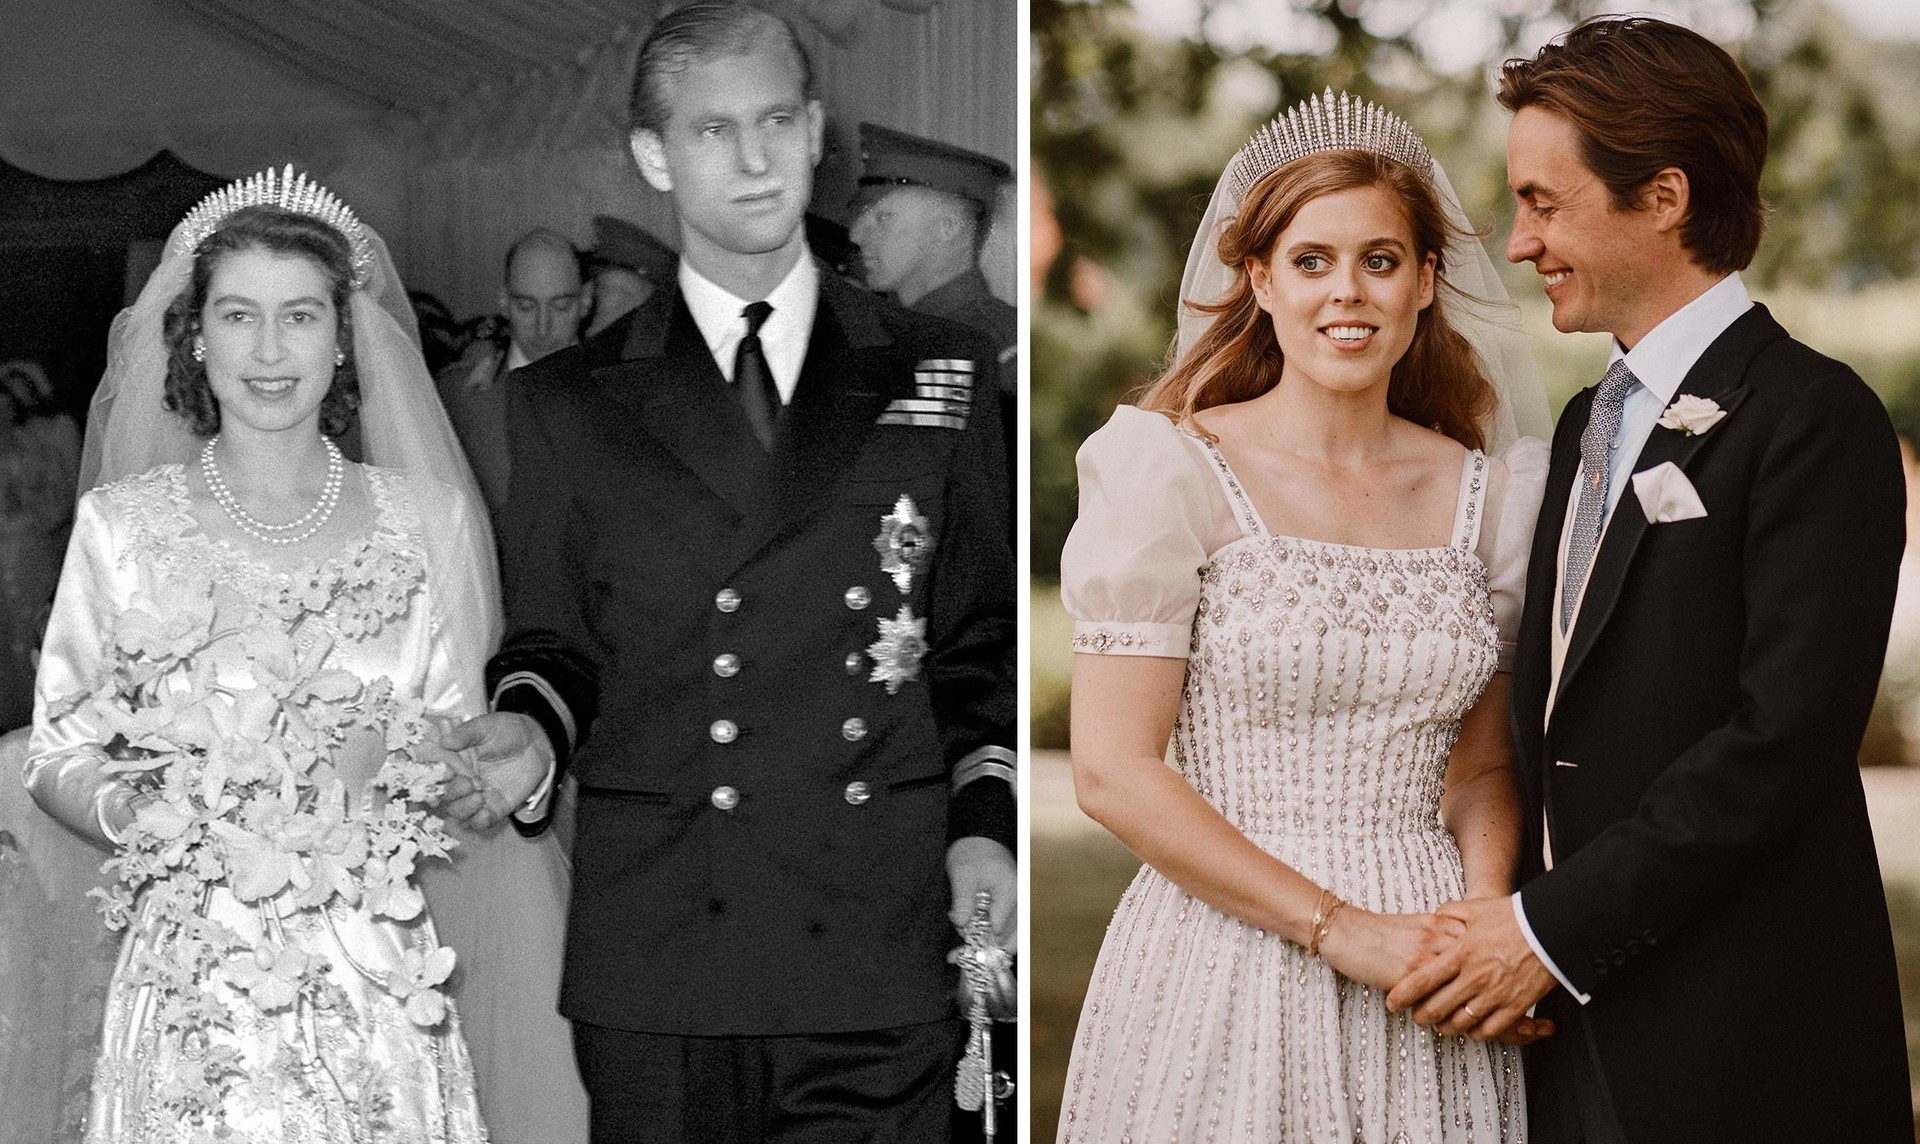 The wedding of Elizabeth II in 1947 and the wedding of Princess Beatrice in 2020.